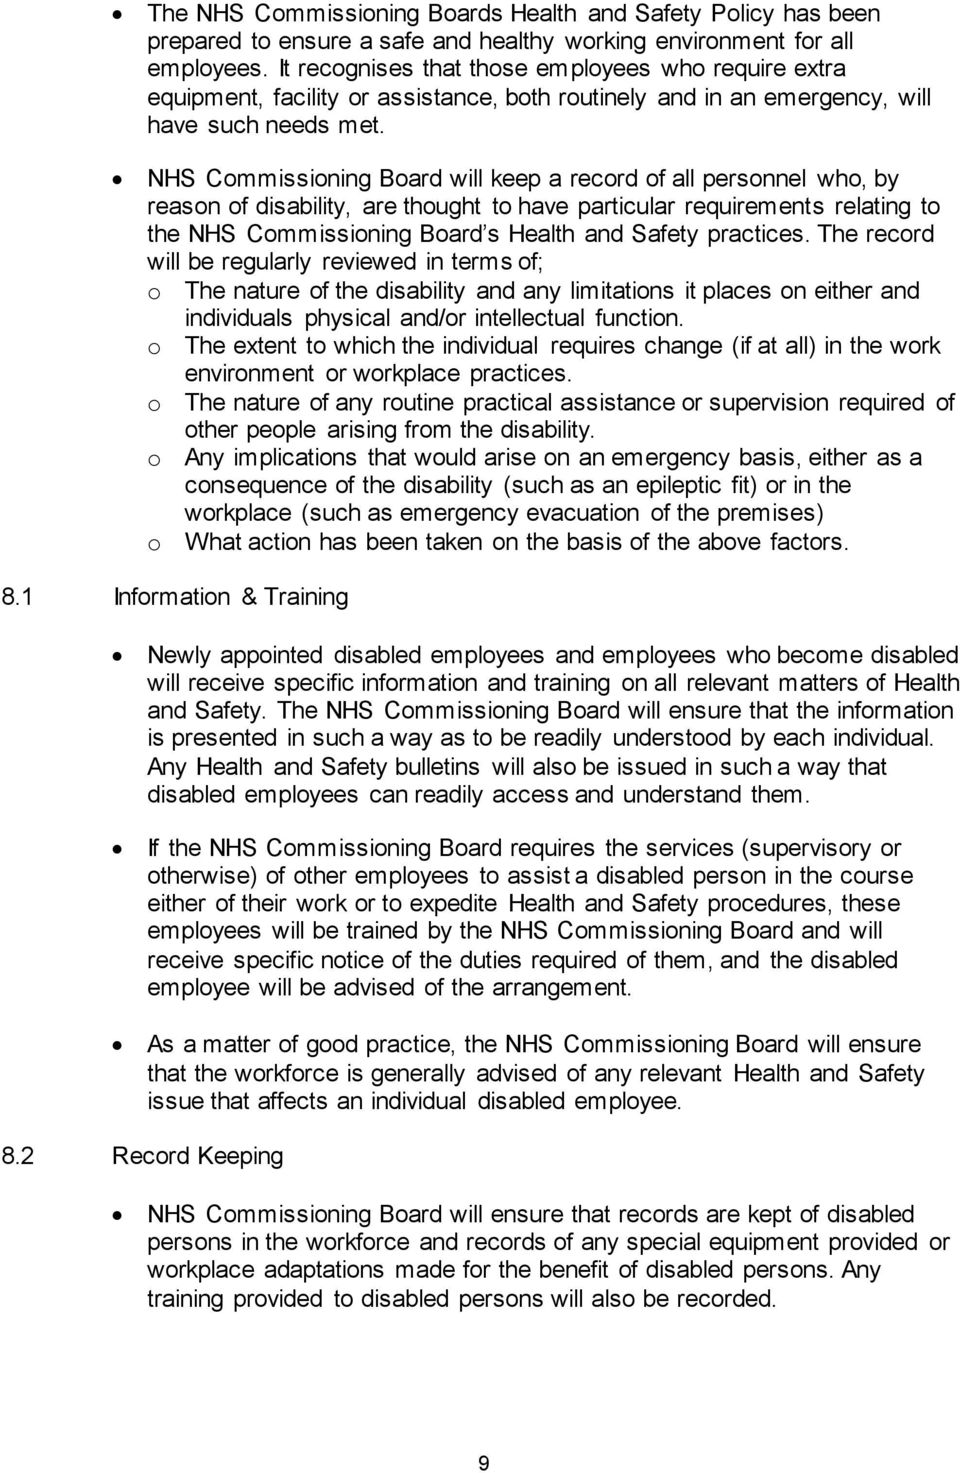 NHS Commissioning Board will keep a record of all personnel who, by reason of disability, are thought to have particular requirements relating to the NHS Commissioning Board s Health and Safety